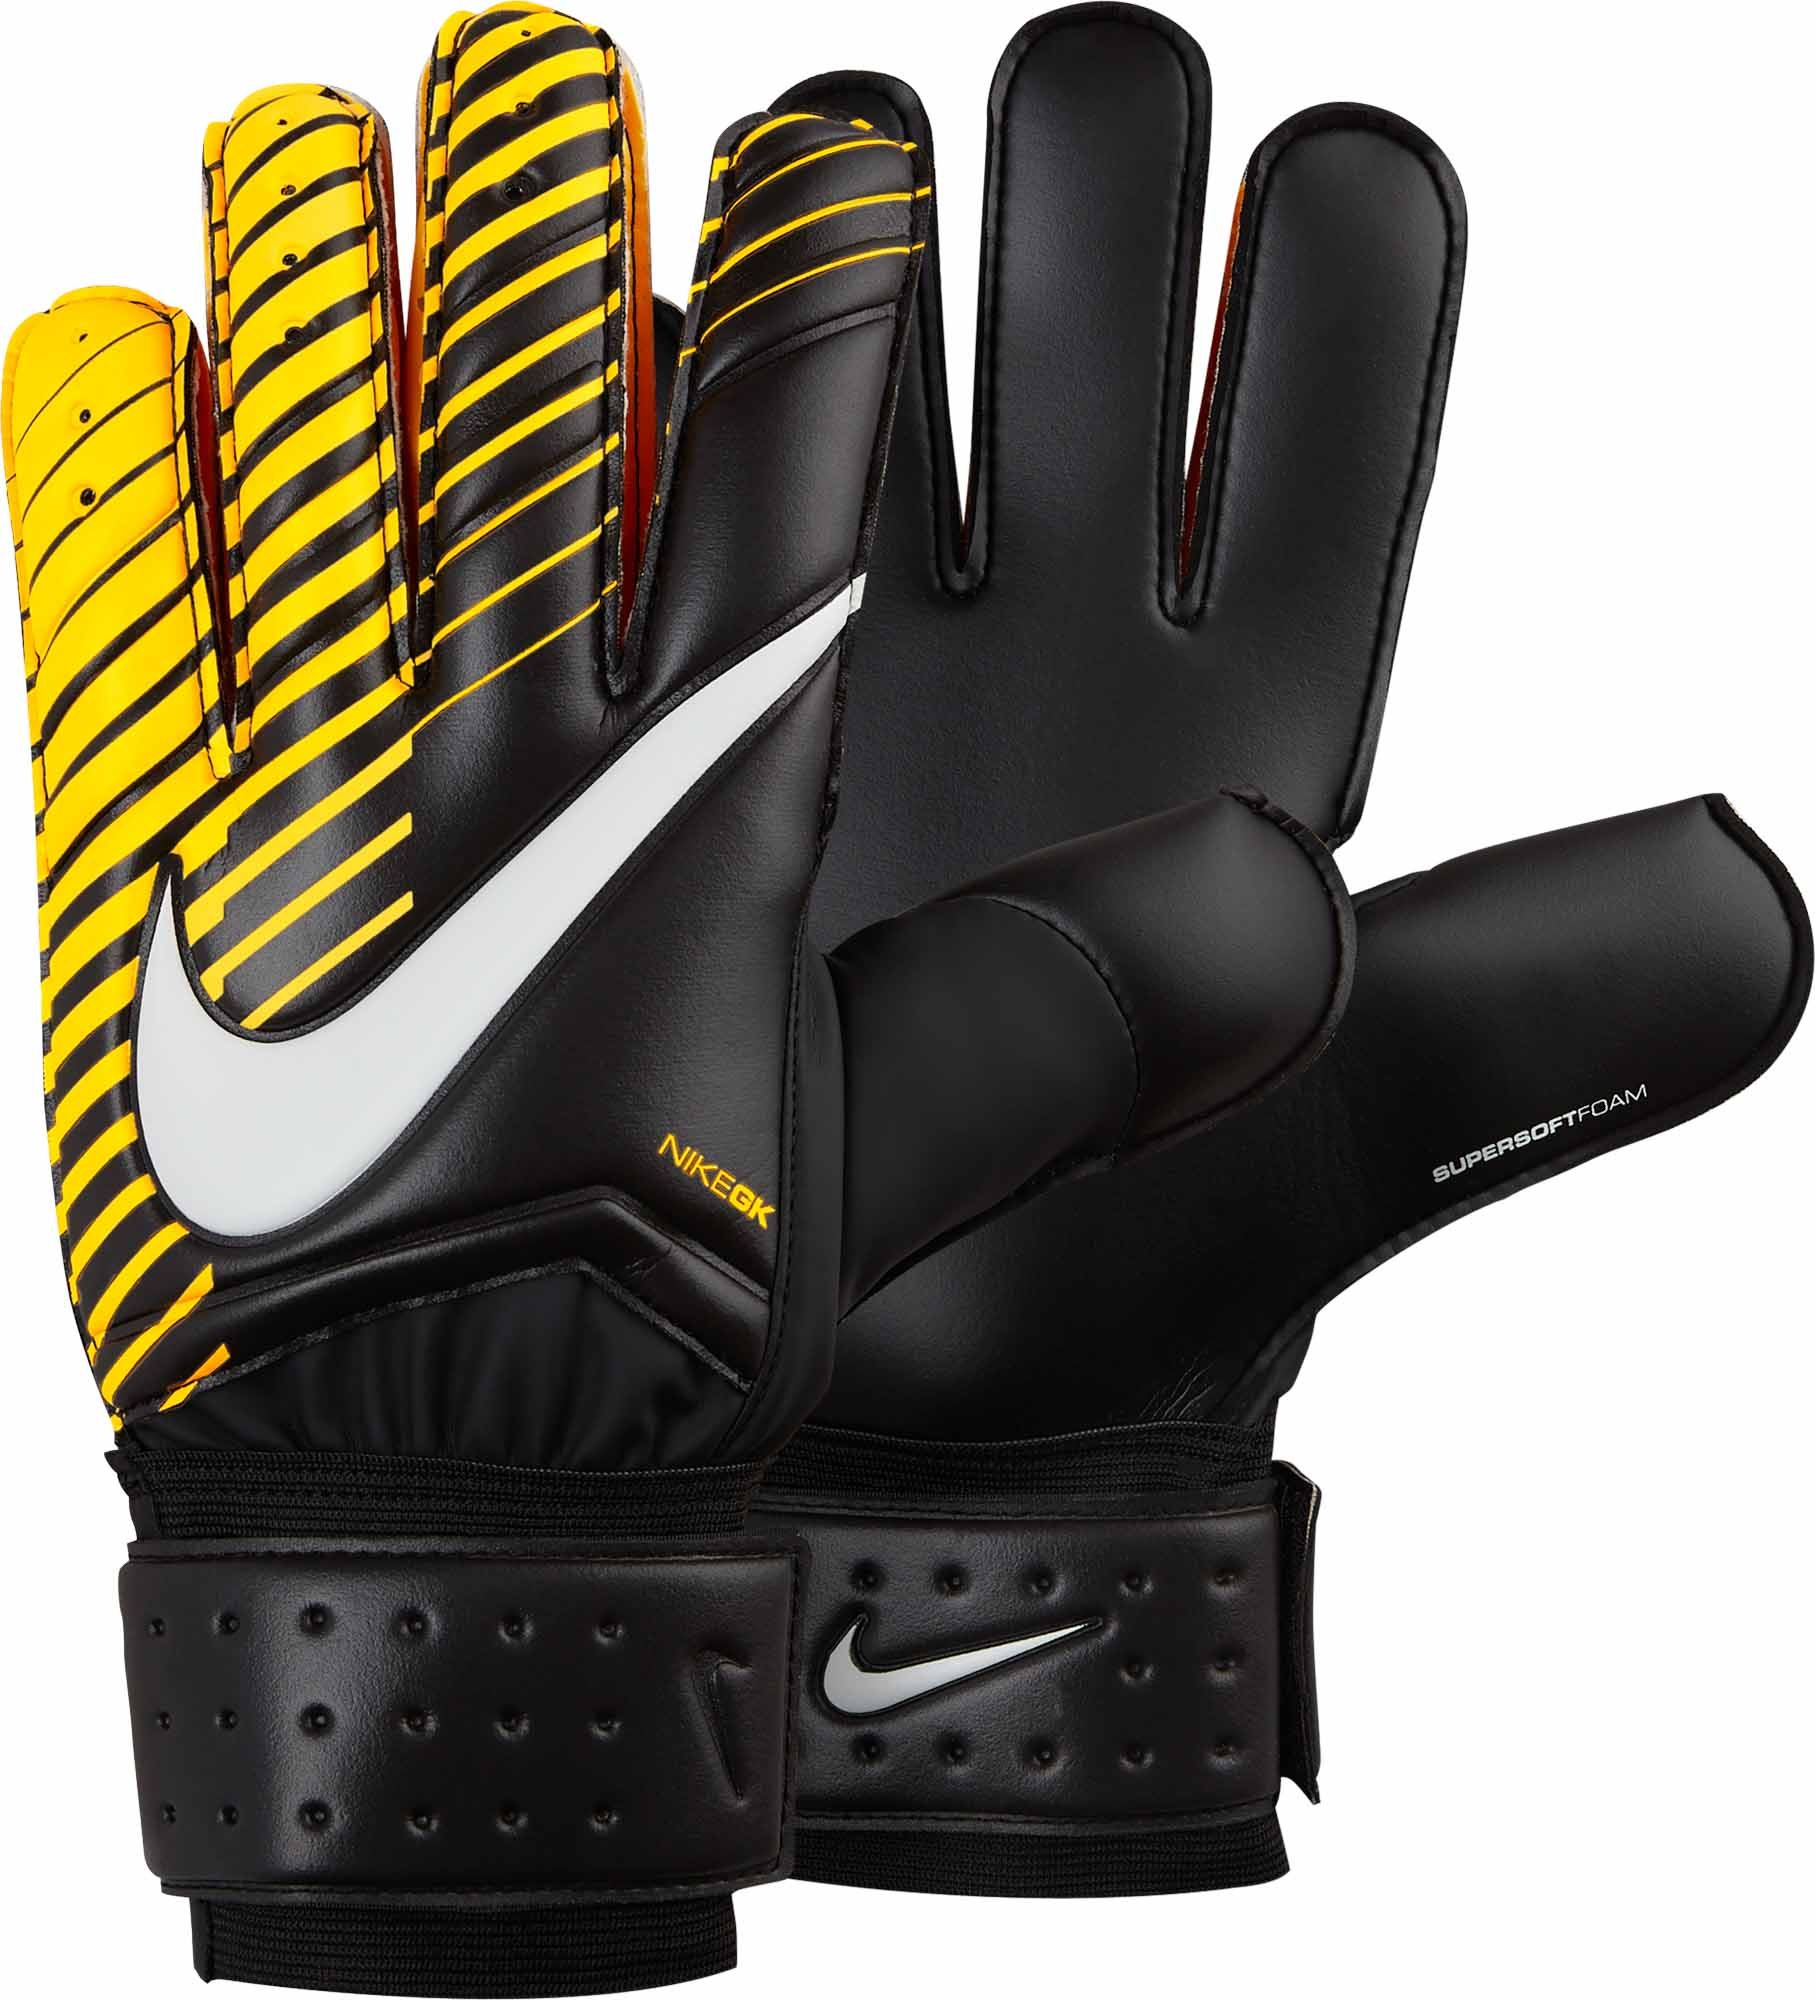 Nike Soccer Gloves: Nike Spyne Pro Goalkeeper Gloves